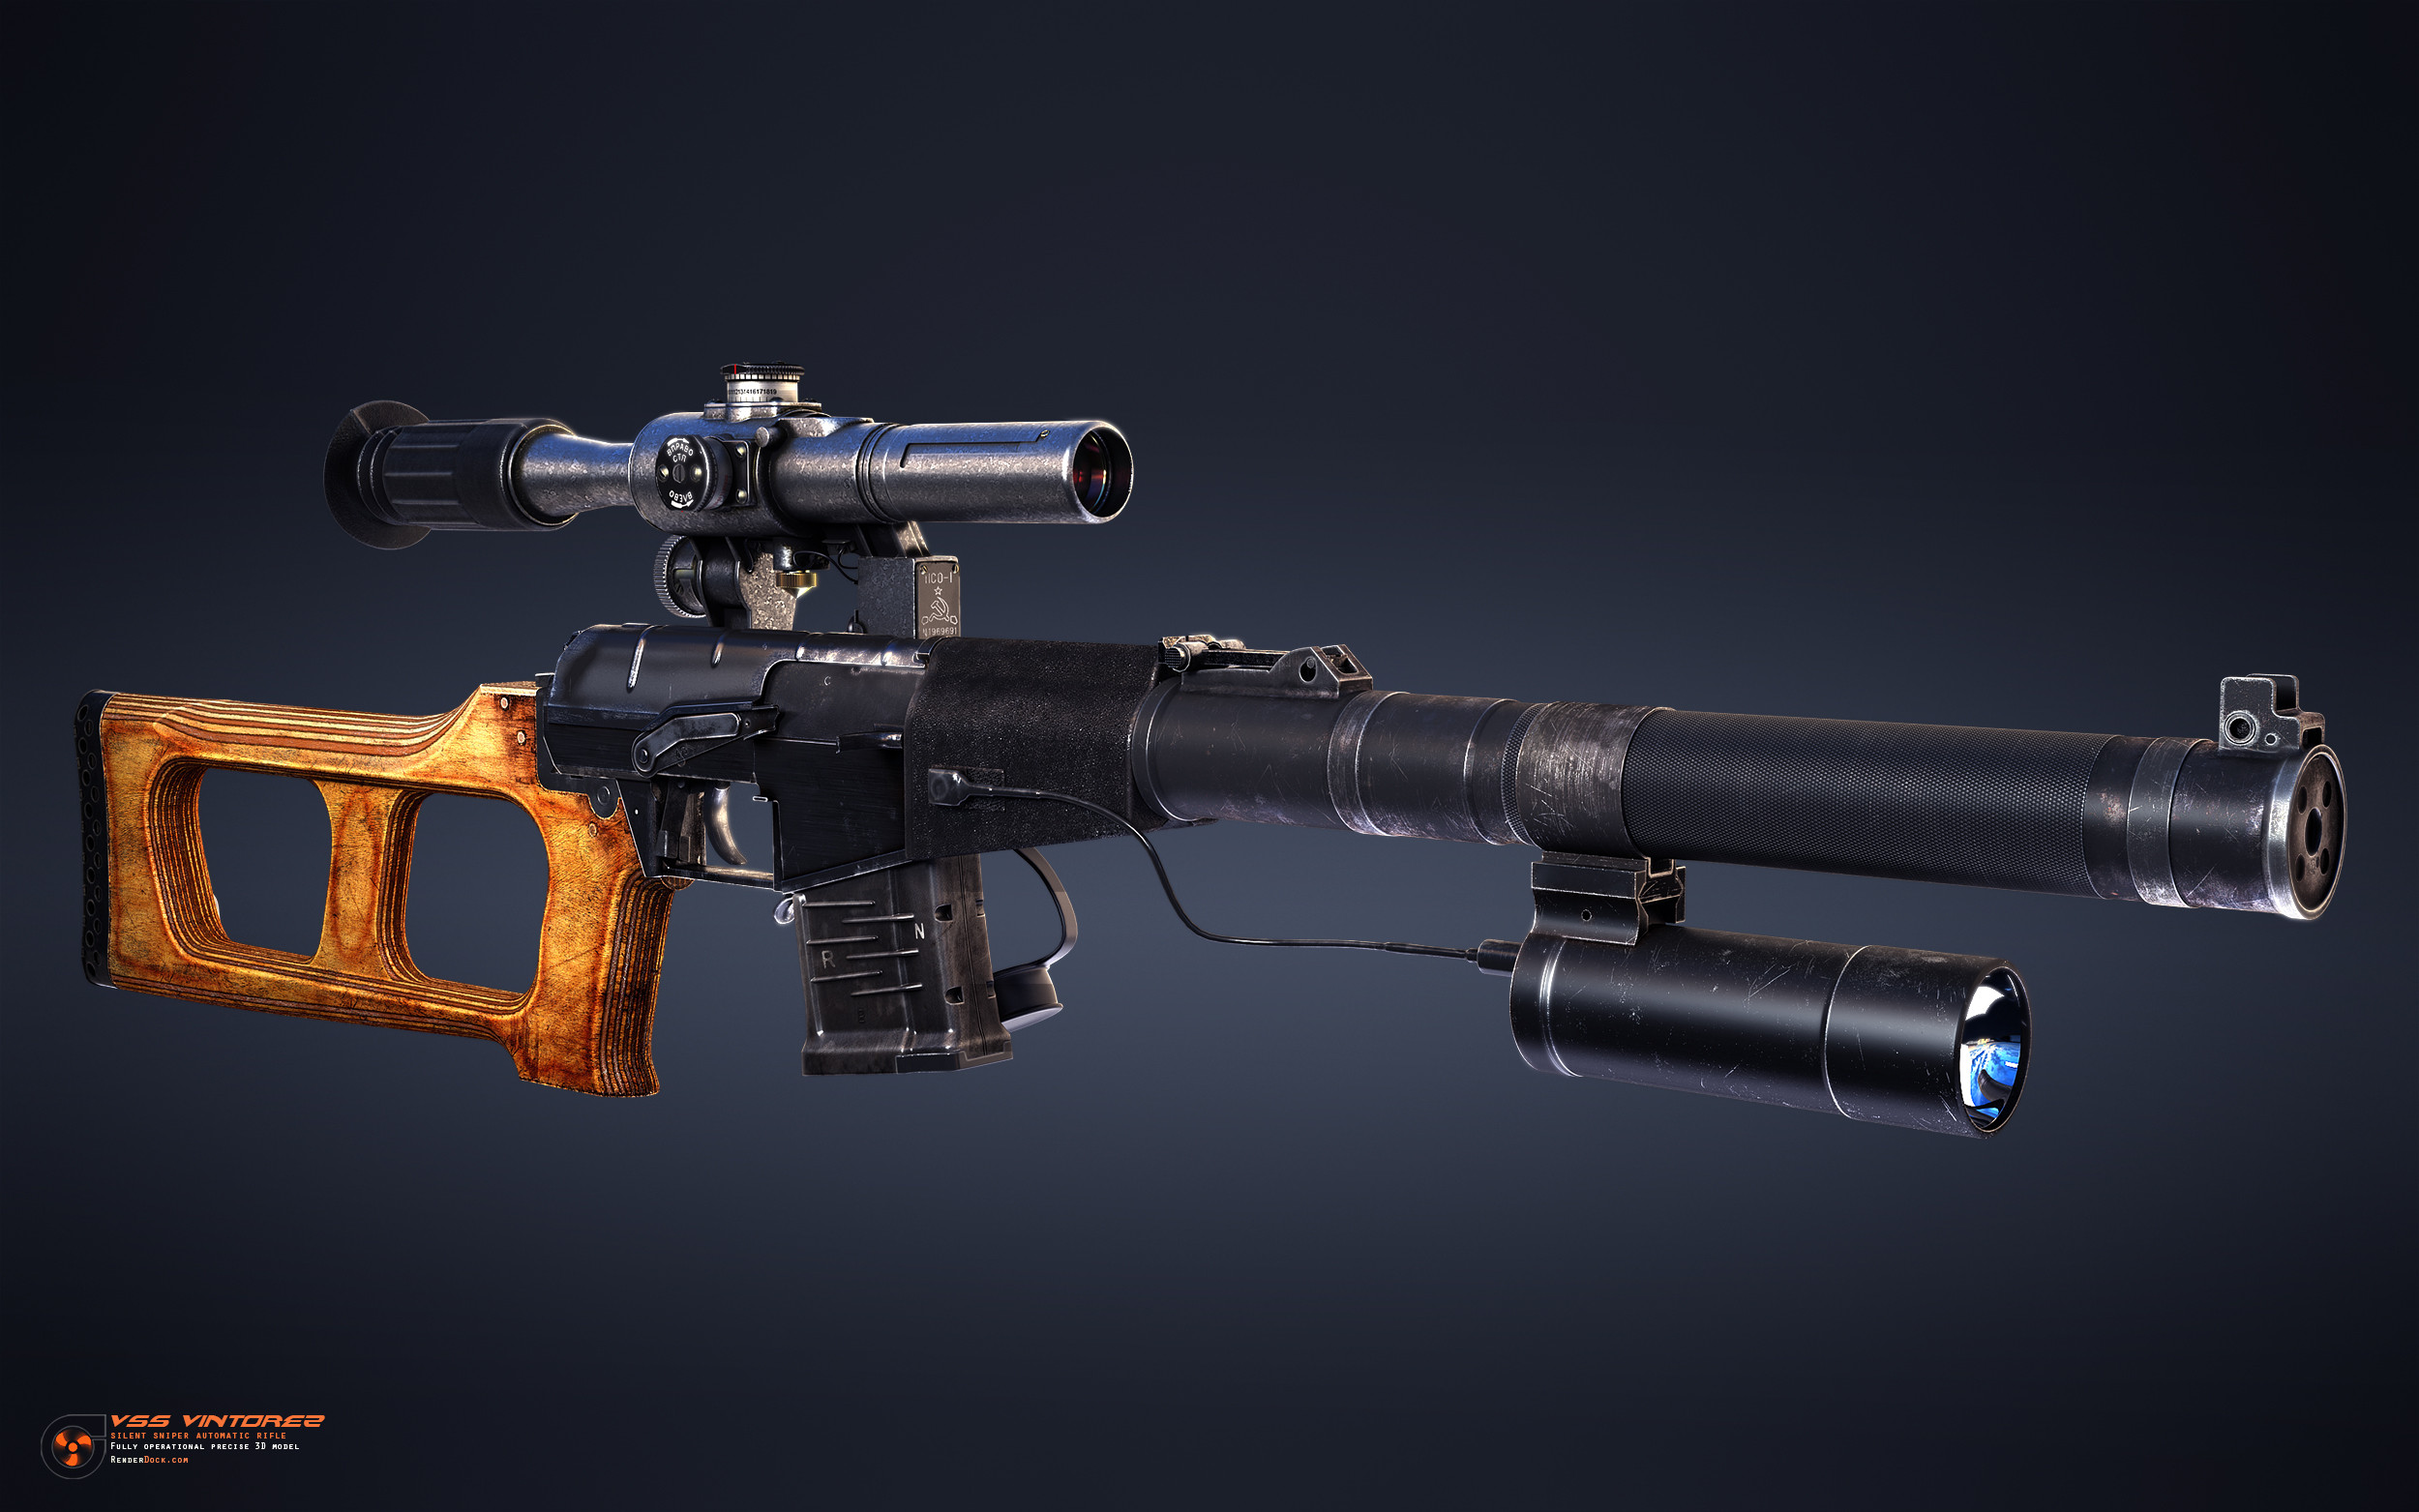 It has 10 or 20 round magazine with ability of both single and automatic fire